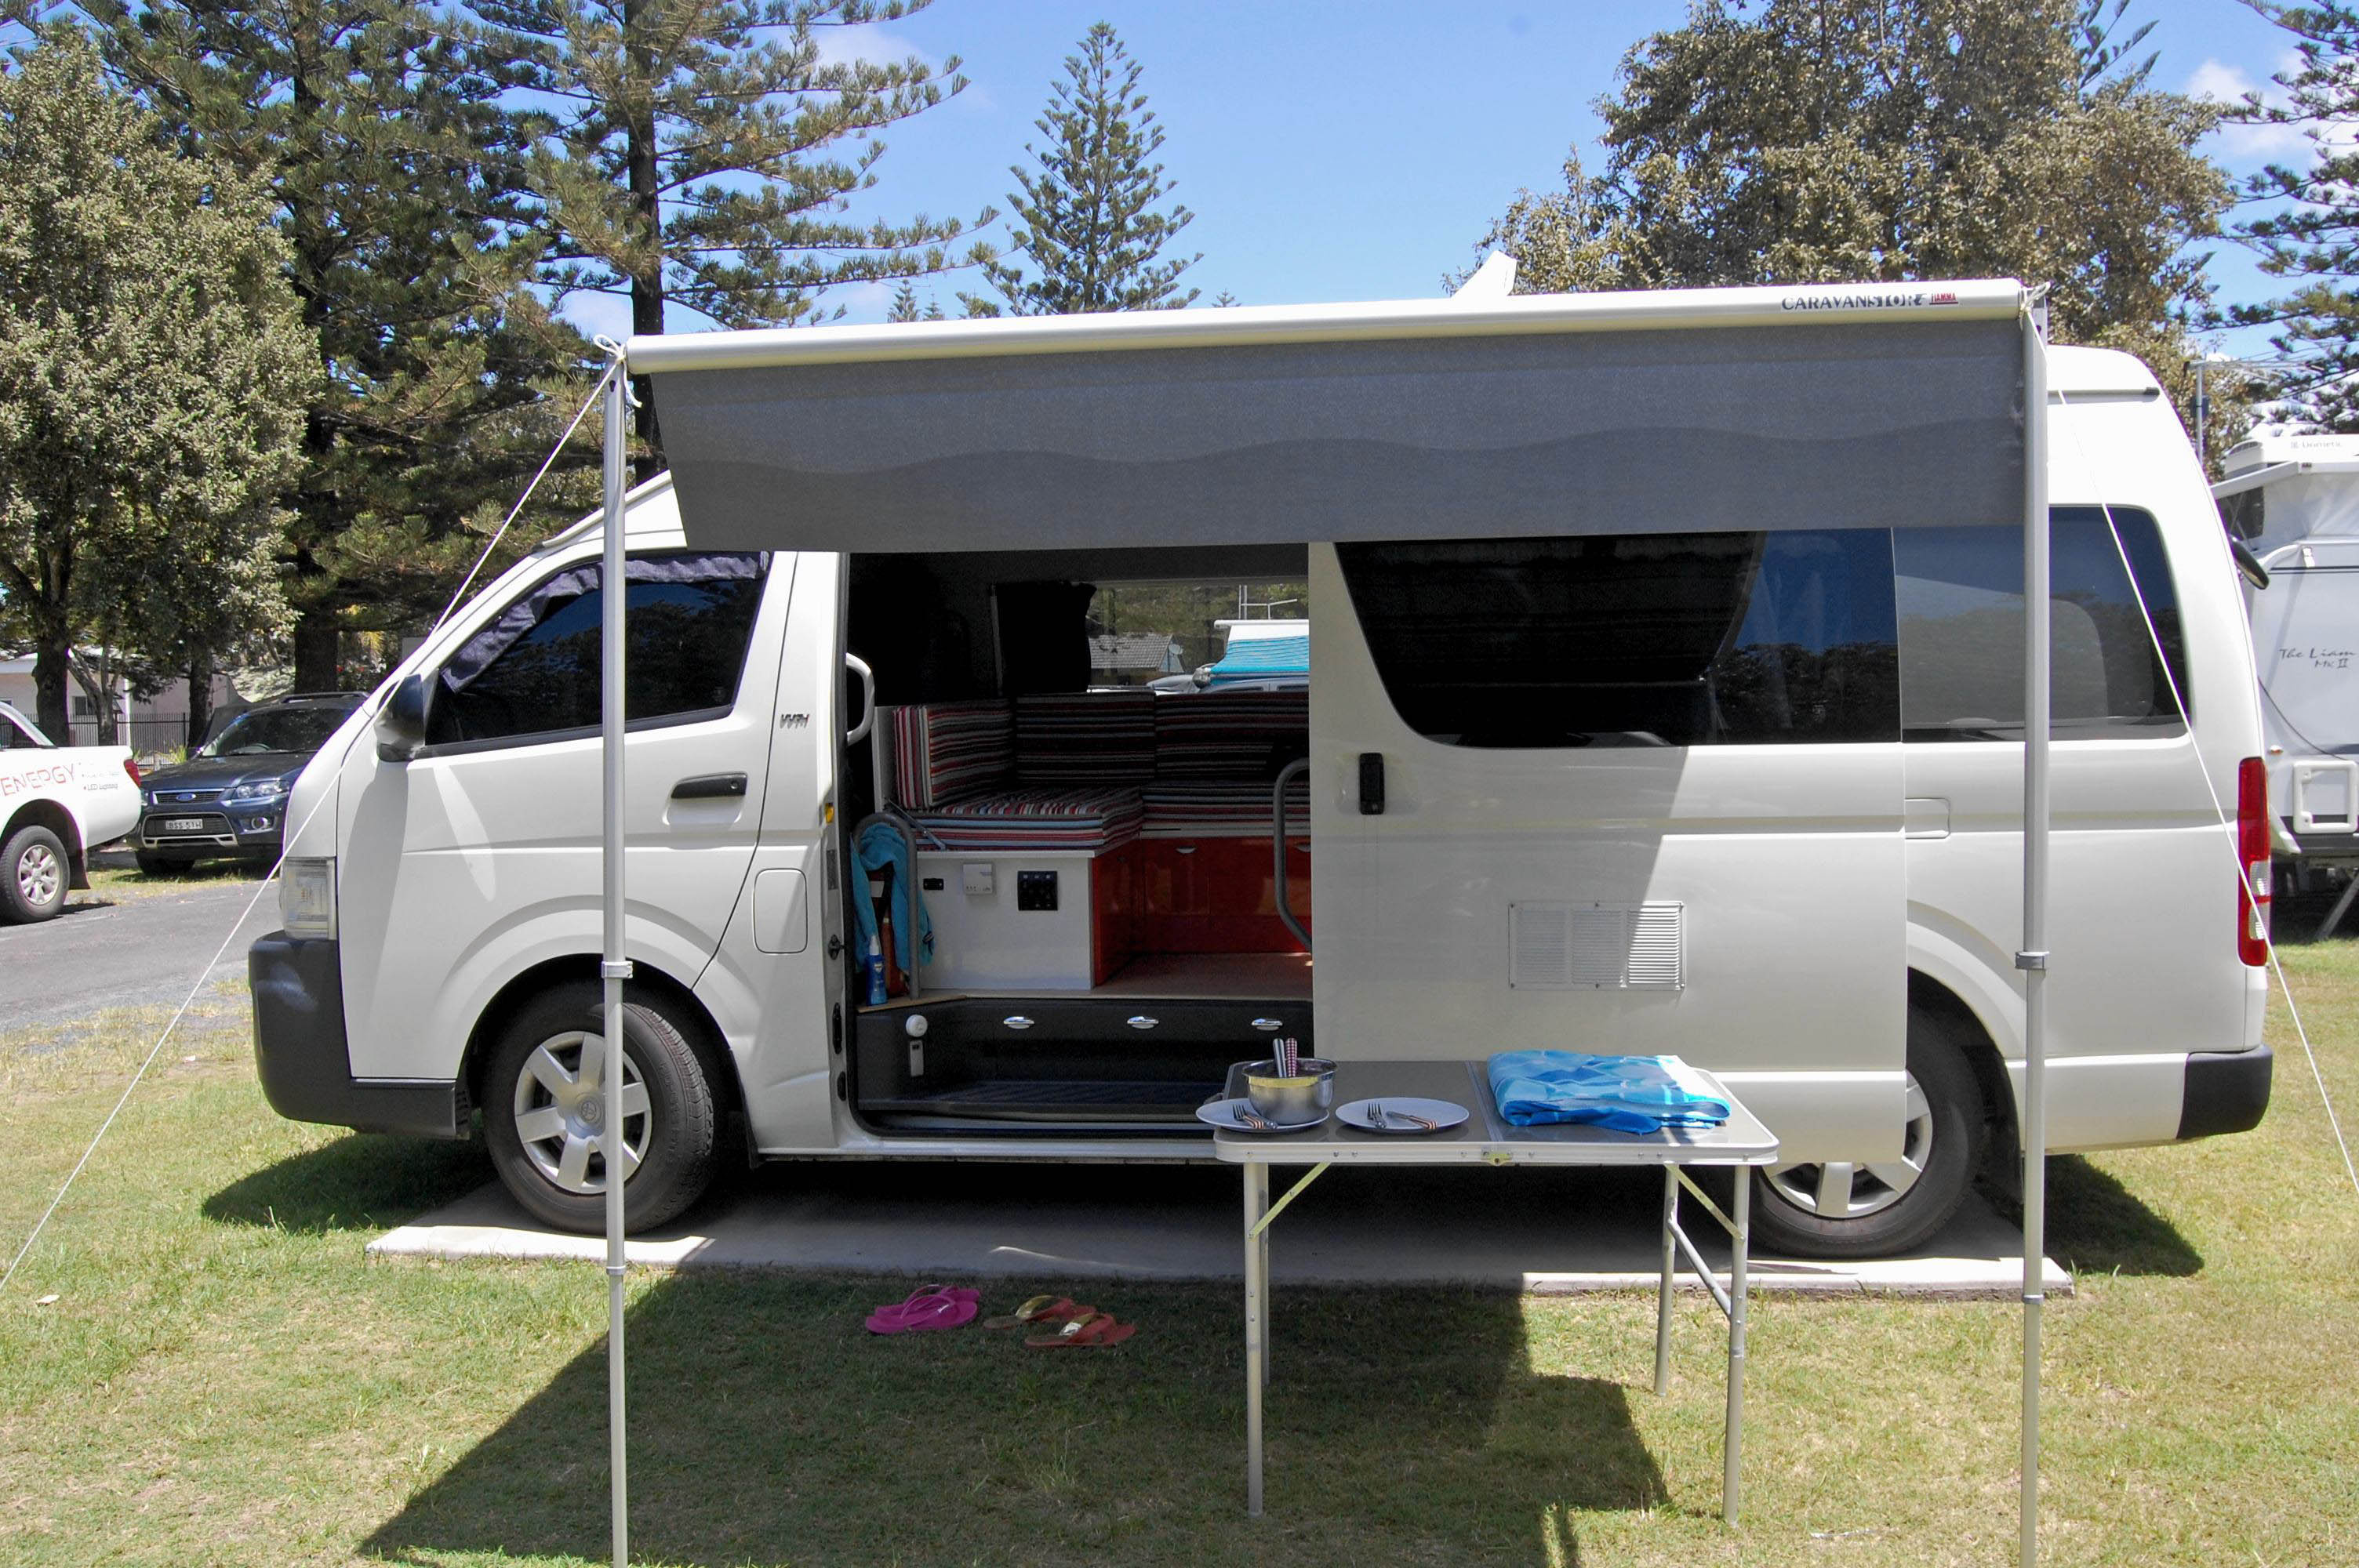 the campervan converts imagine being able to pull over